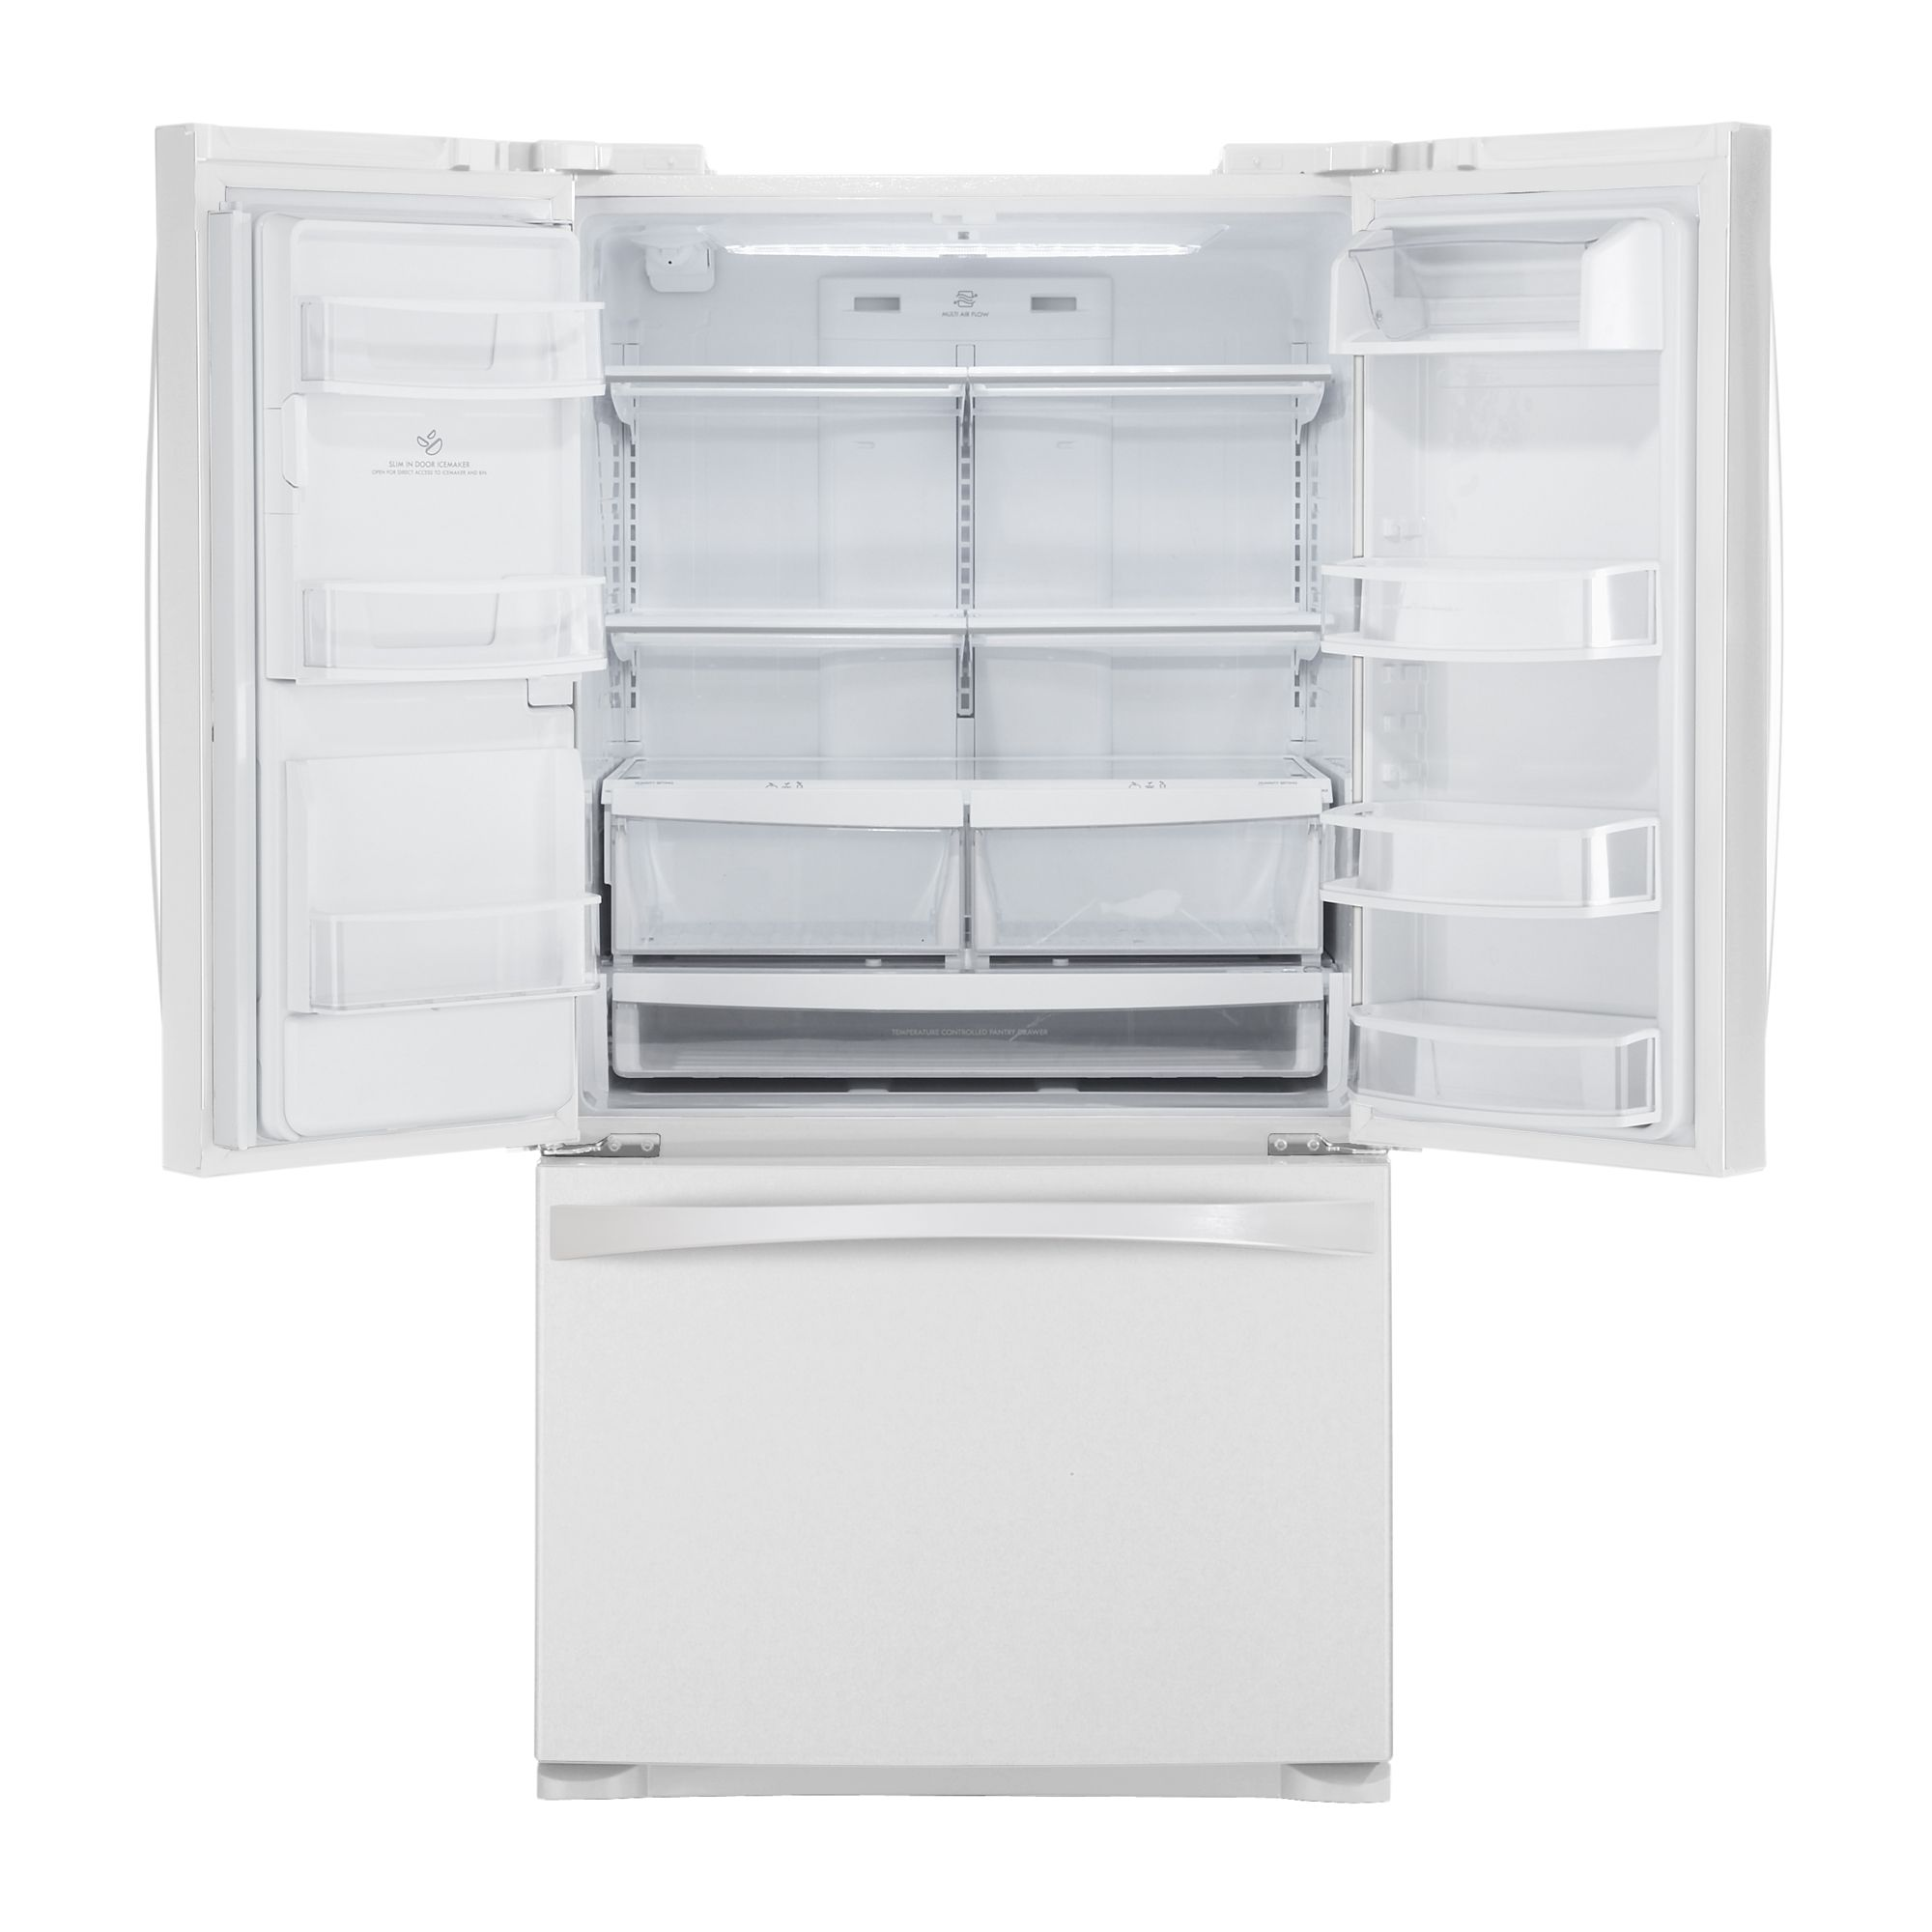 Kenmore Elite 27.6 cu. ft. French Door Bottom-Freezer Refrigerator - White